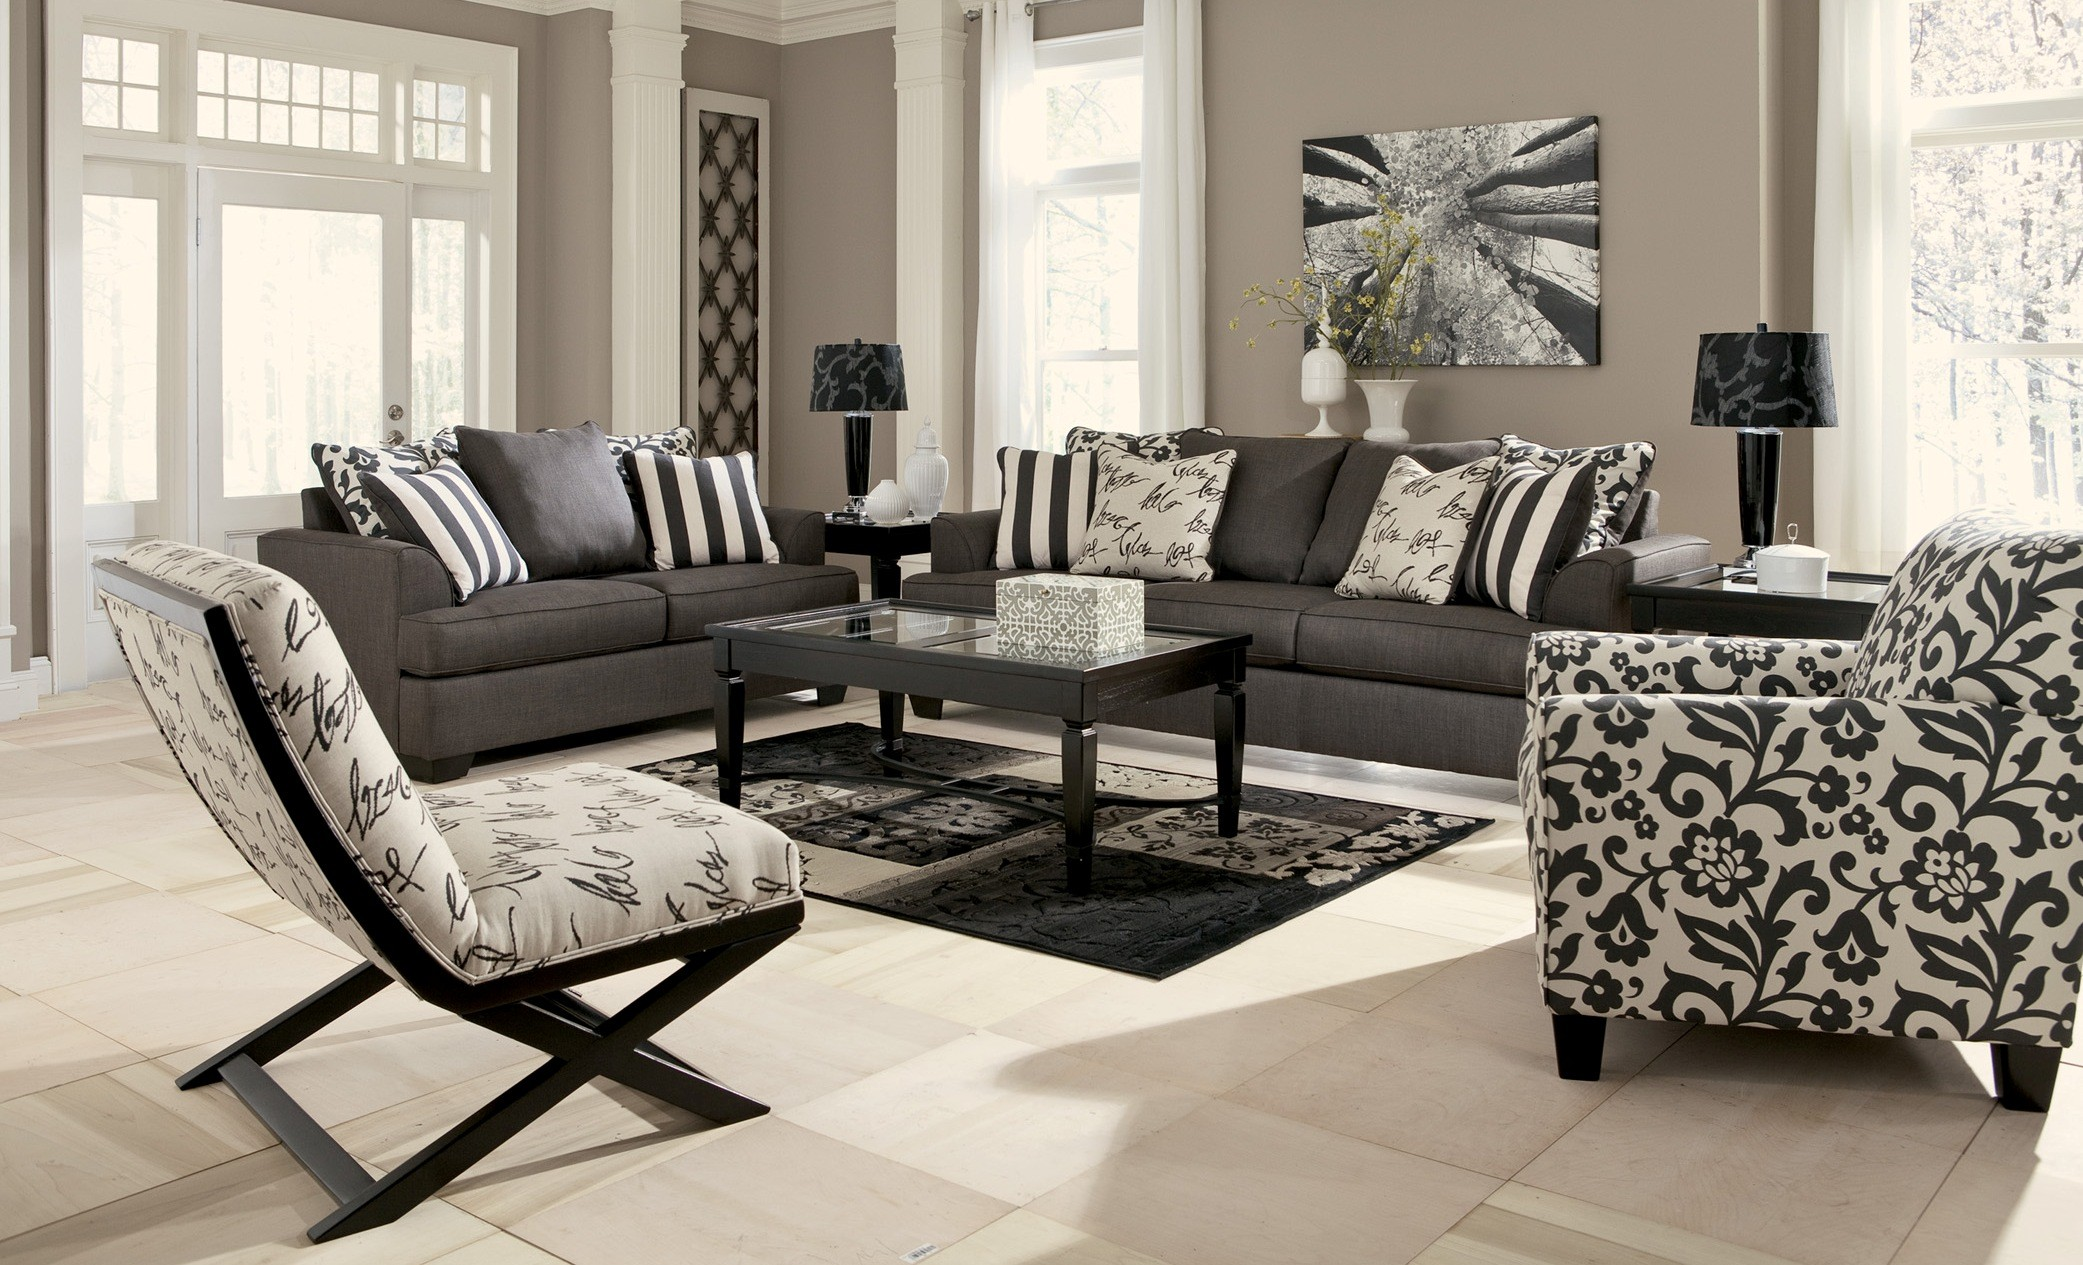 Levon Charcoal Living Room Set From Ashley Coleman Furniture - Ashley furniture living room table set